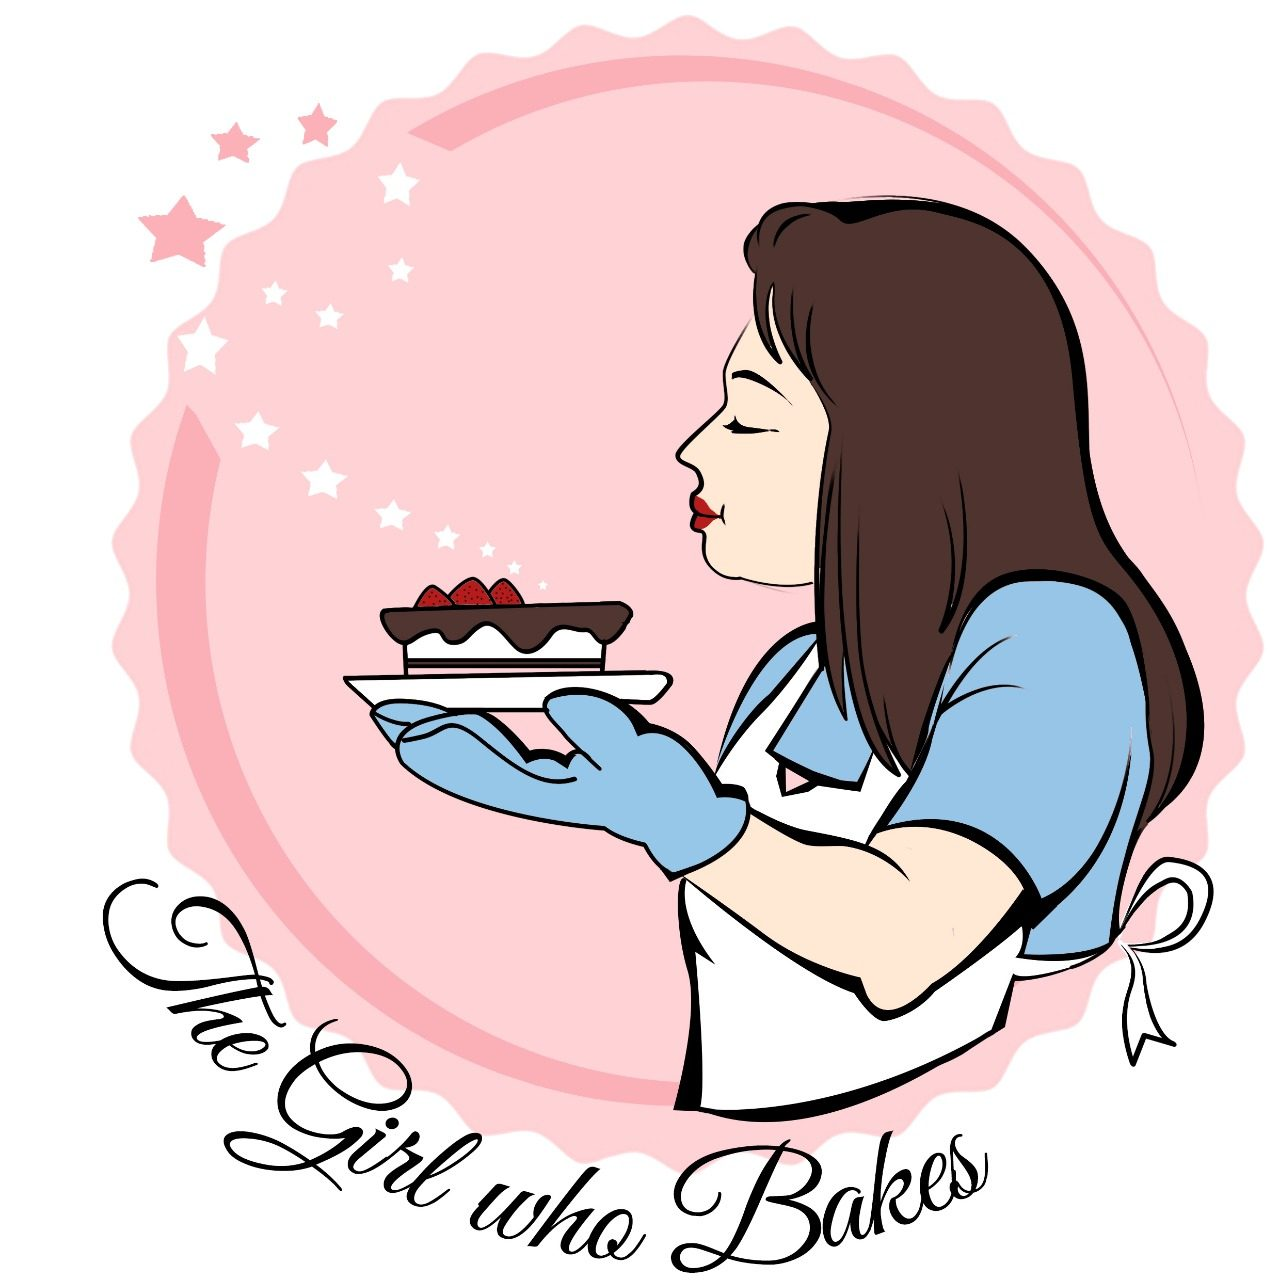 The Girl Who Bakes